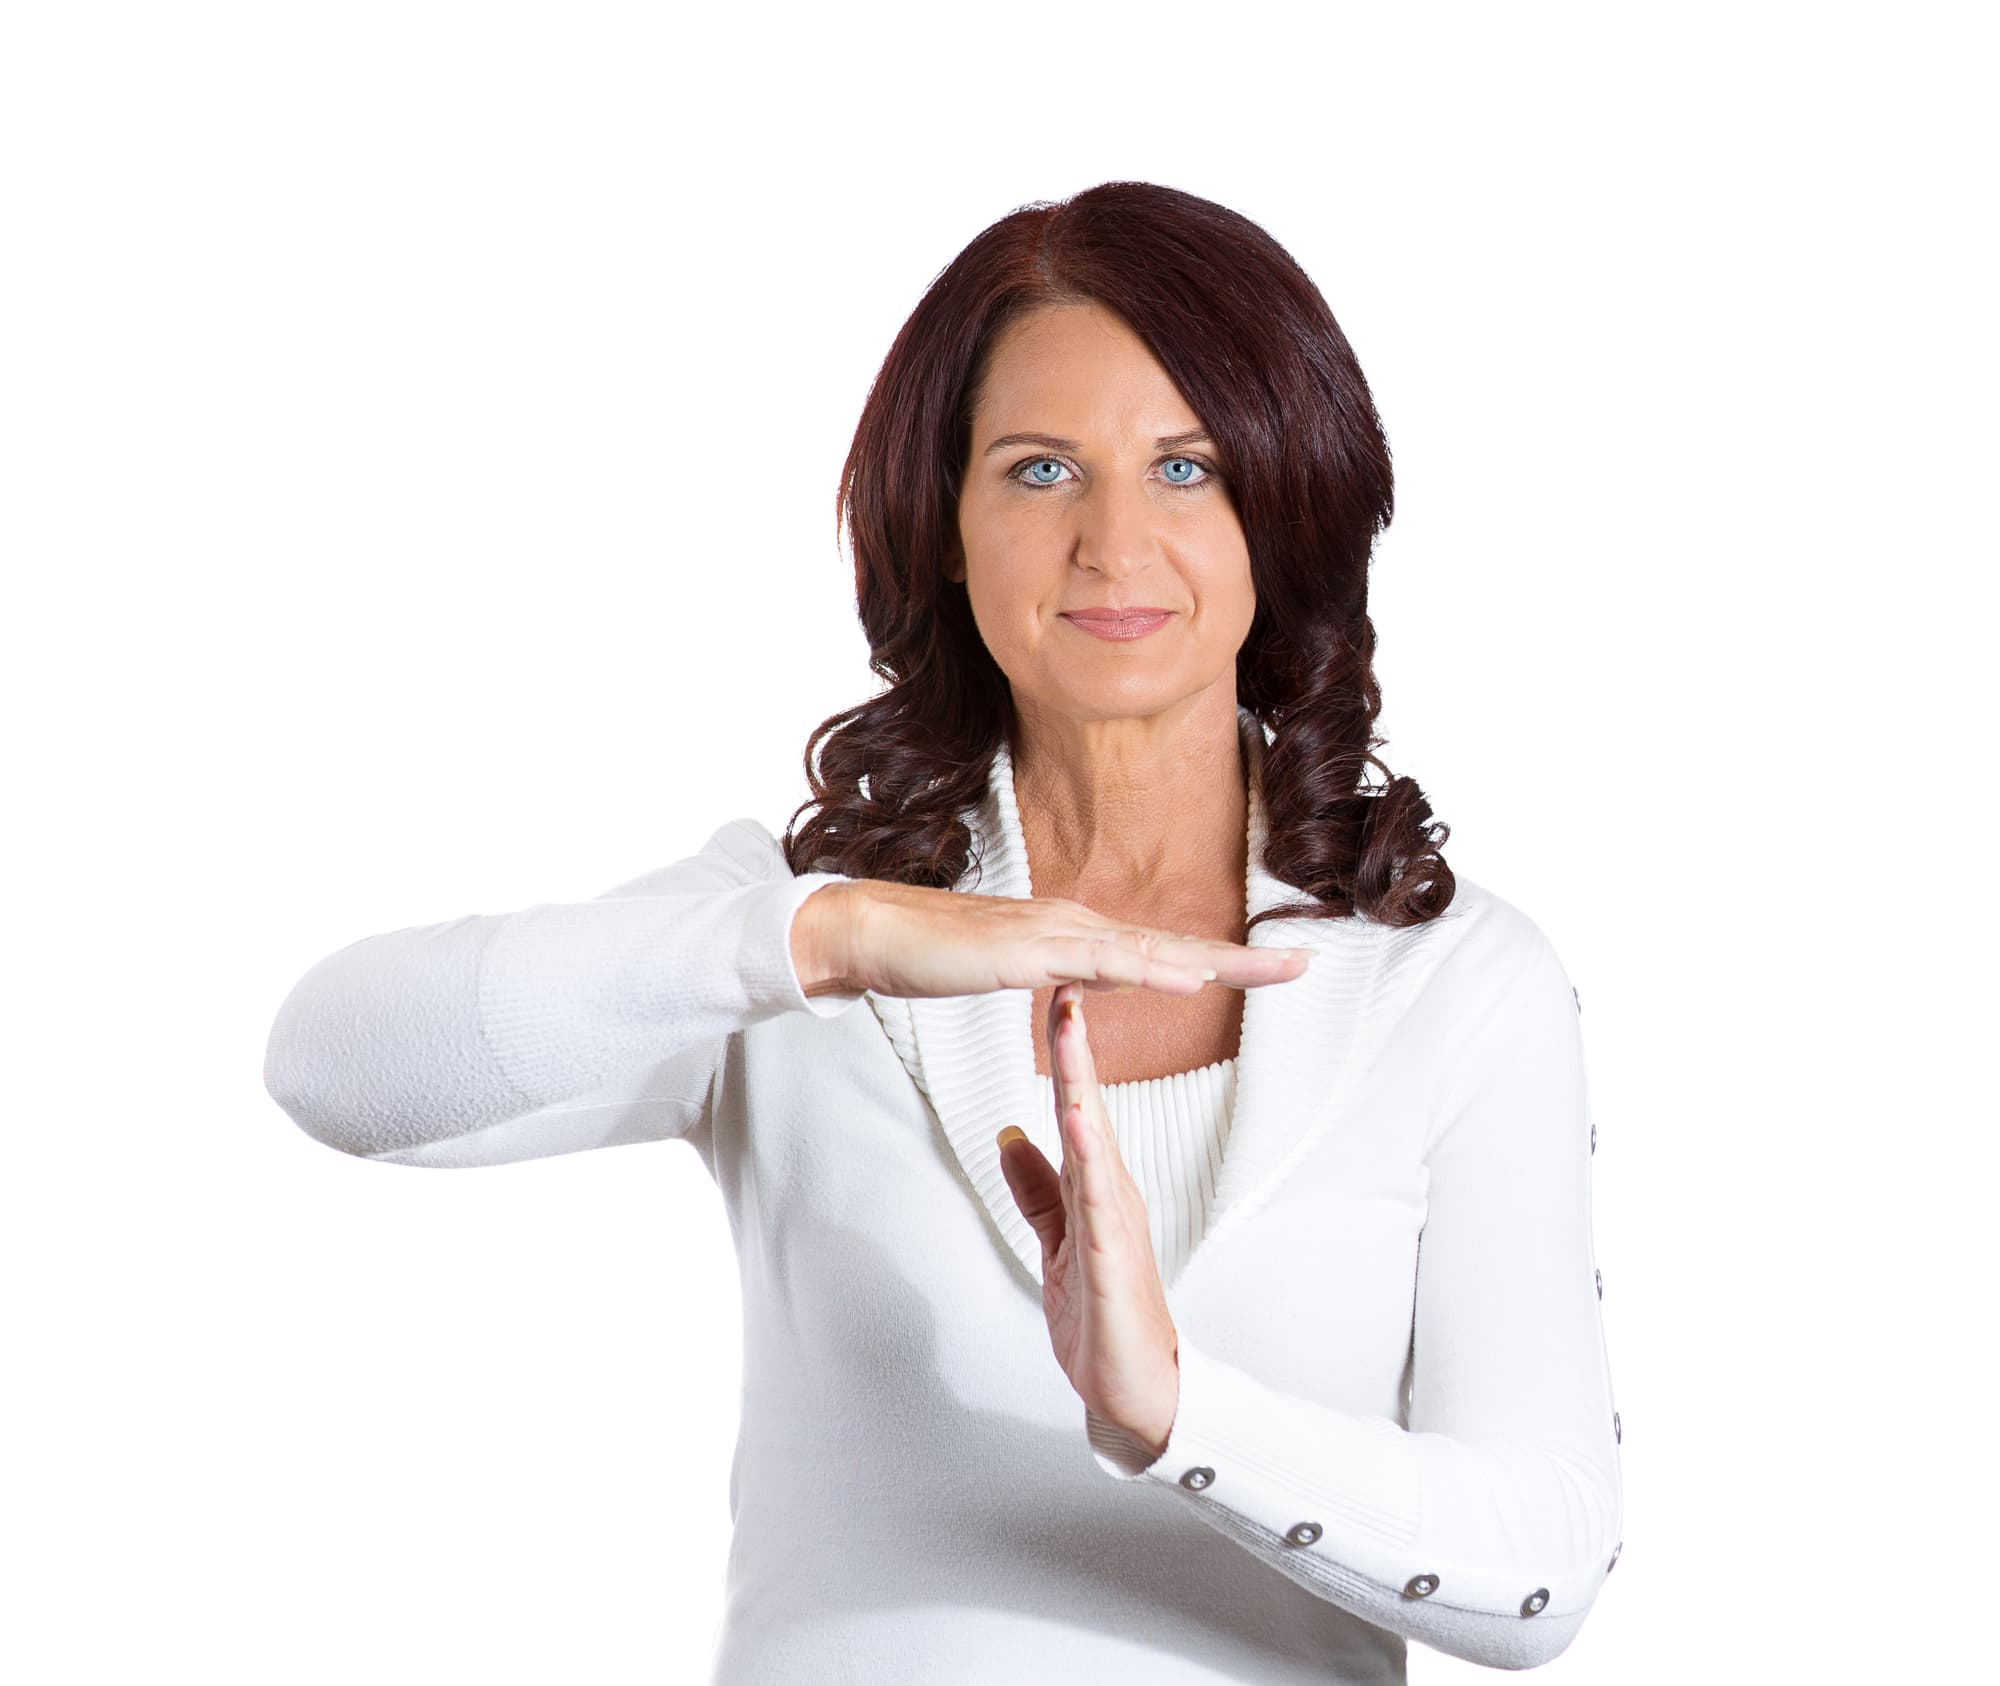 Closeup portrait middle aged happy, smiling woman showing time out gesture with hands, isolated white background. Positive human emotions, facial expression feelings, body language, reaction, attitude